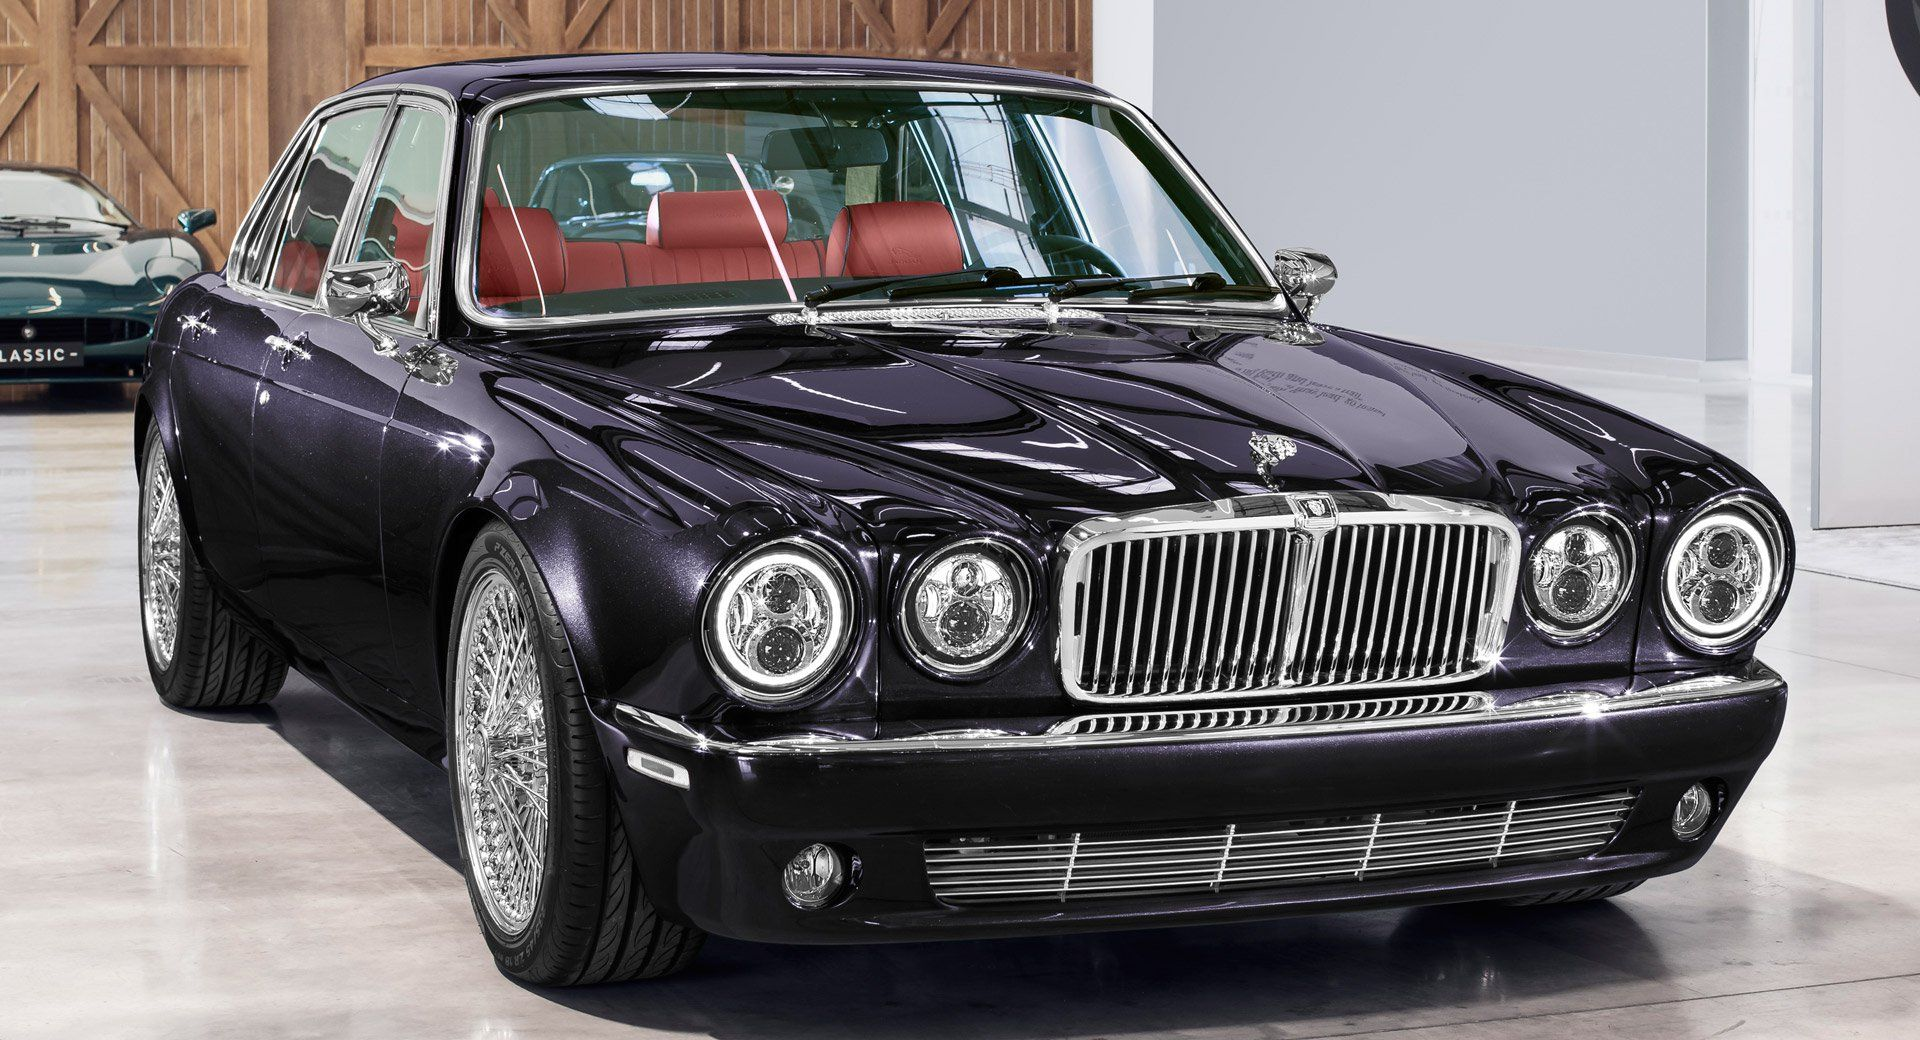 Jaguar Classic S Xj6 Restomod Is Rock Roll On Wire Wheels